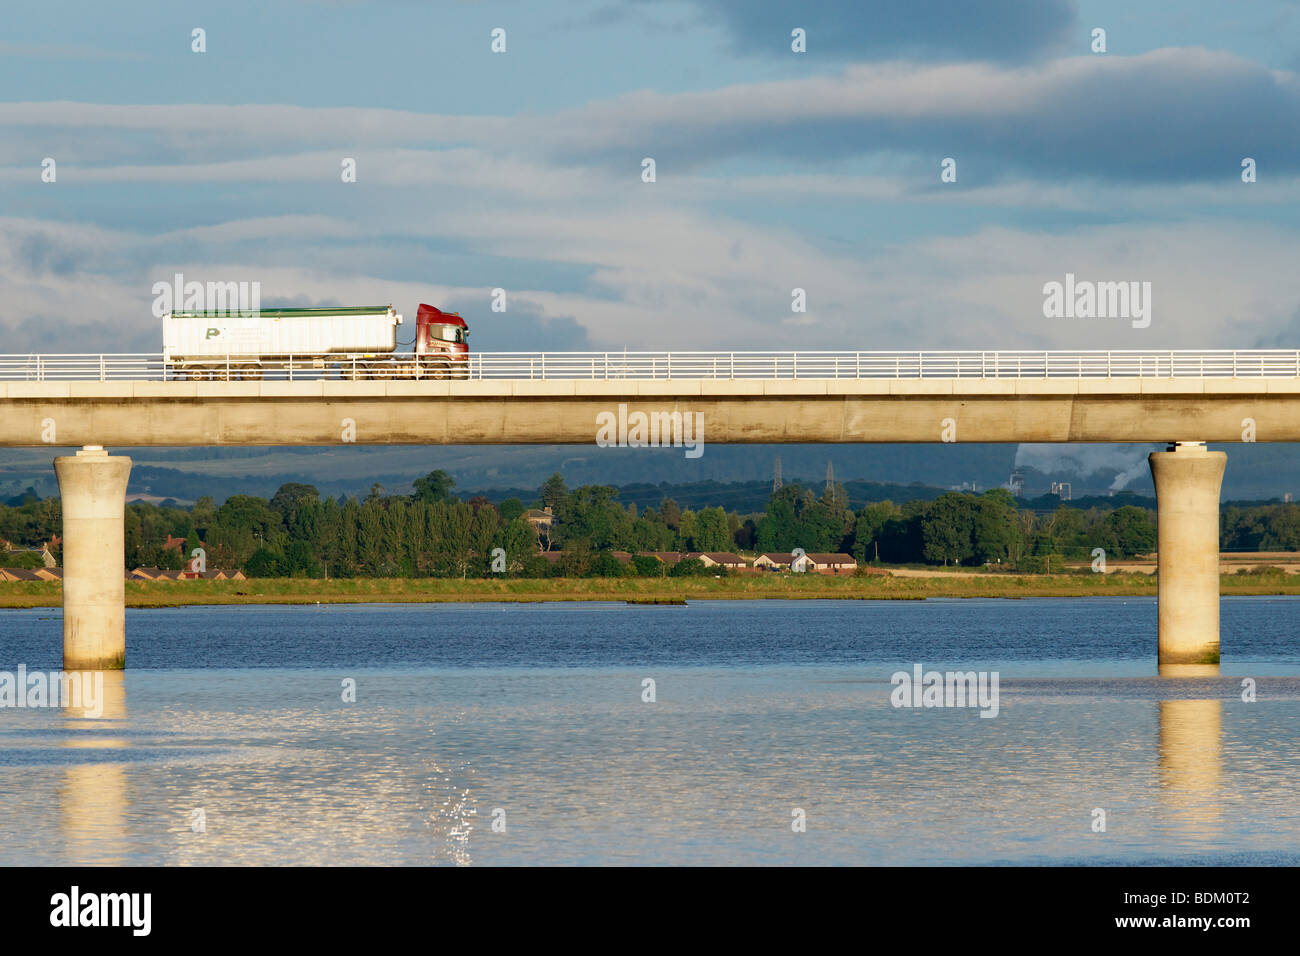 HGV on the Clackmannanshire Bridge across the Firth of Forth, Scotland. - Stock Image